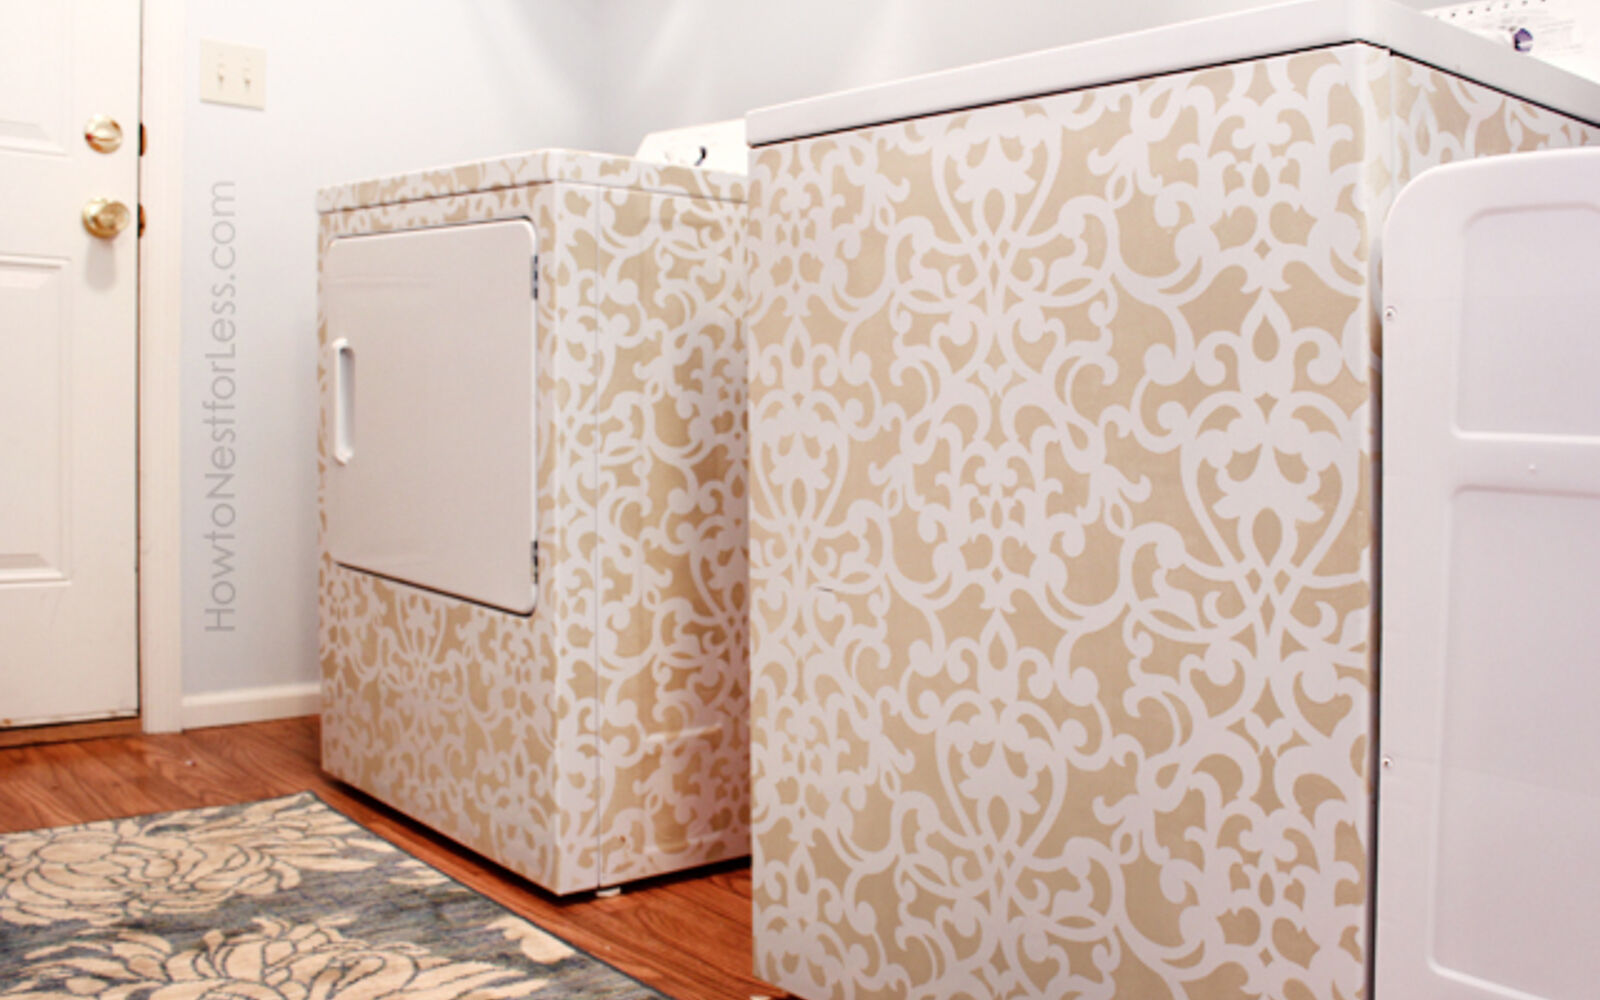 s 14 glamorous ways to upgrade your home using stencils, Give your old washer dryer a new life